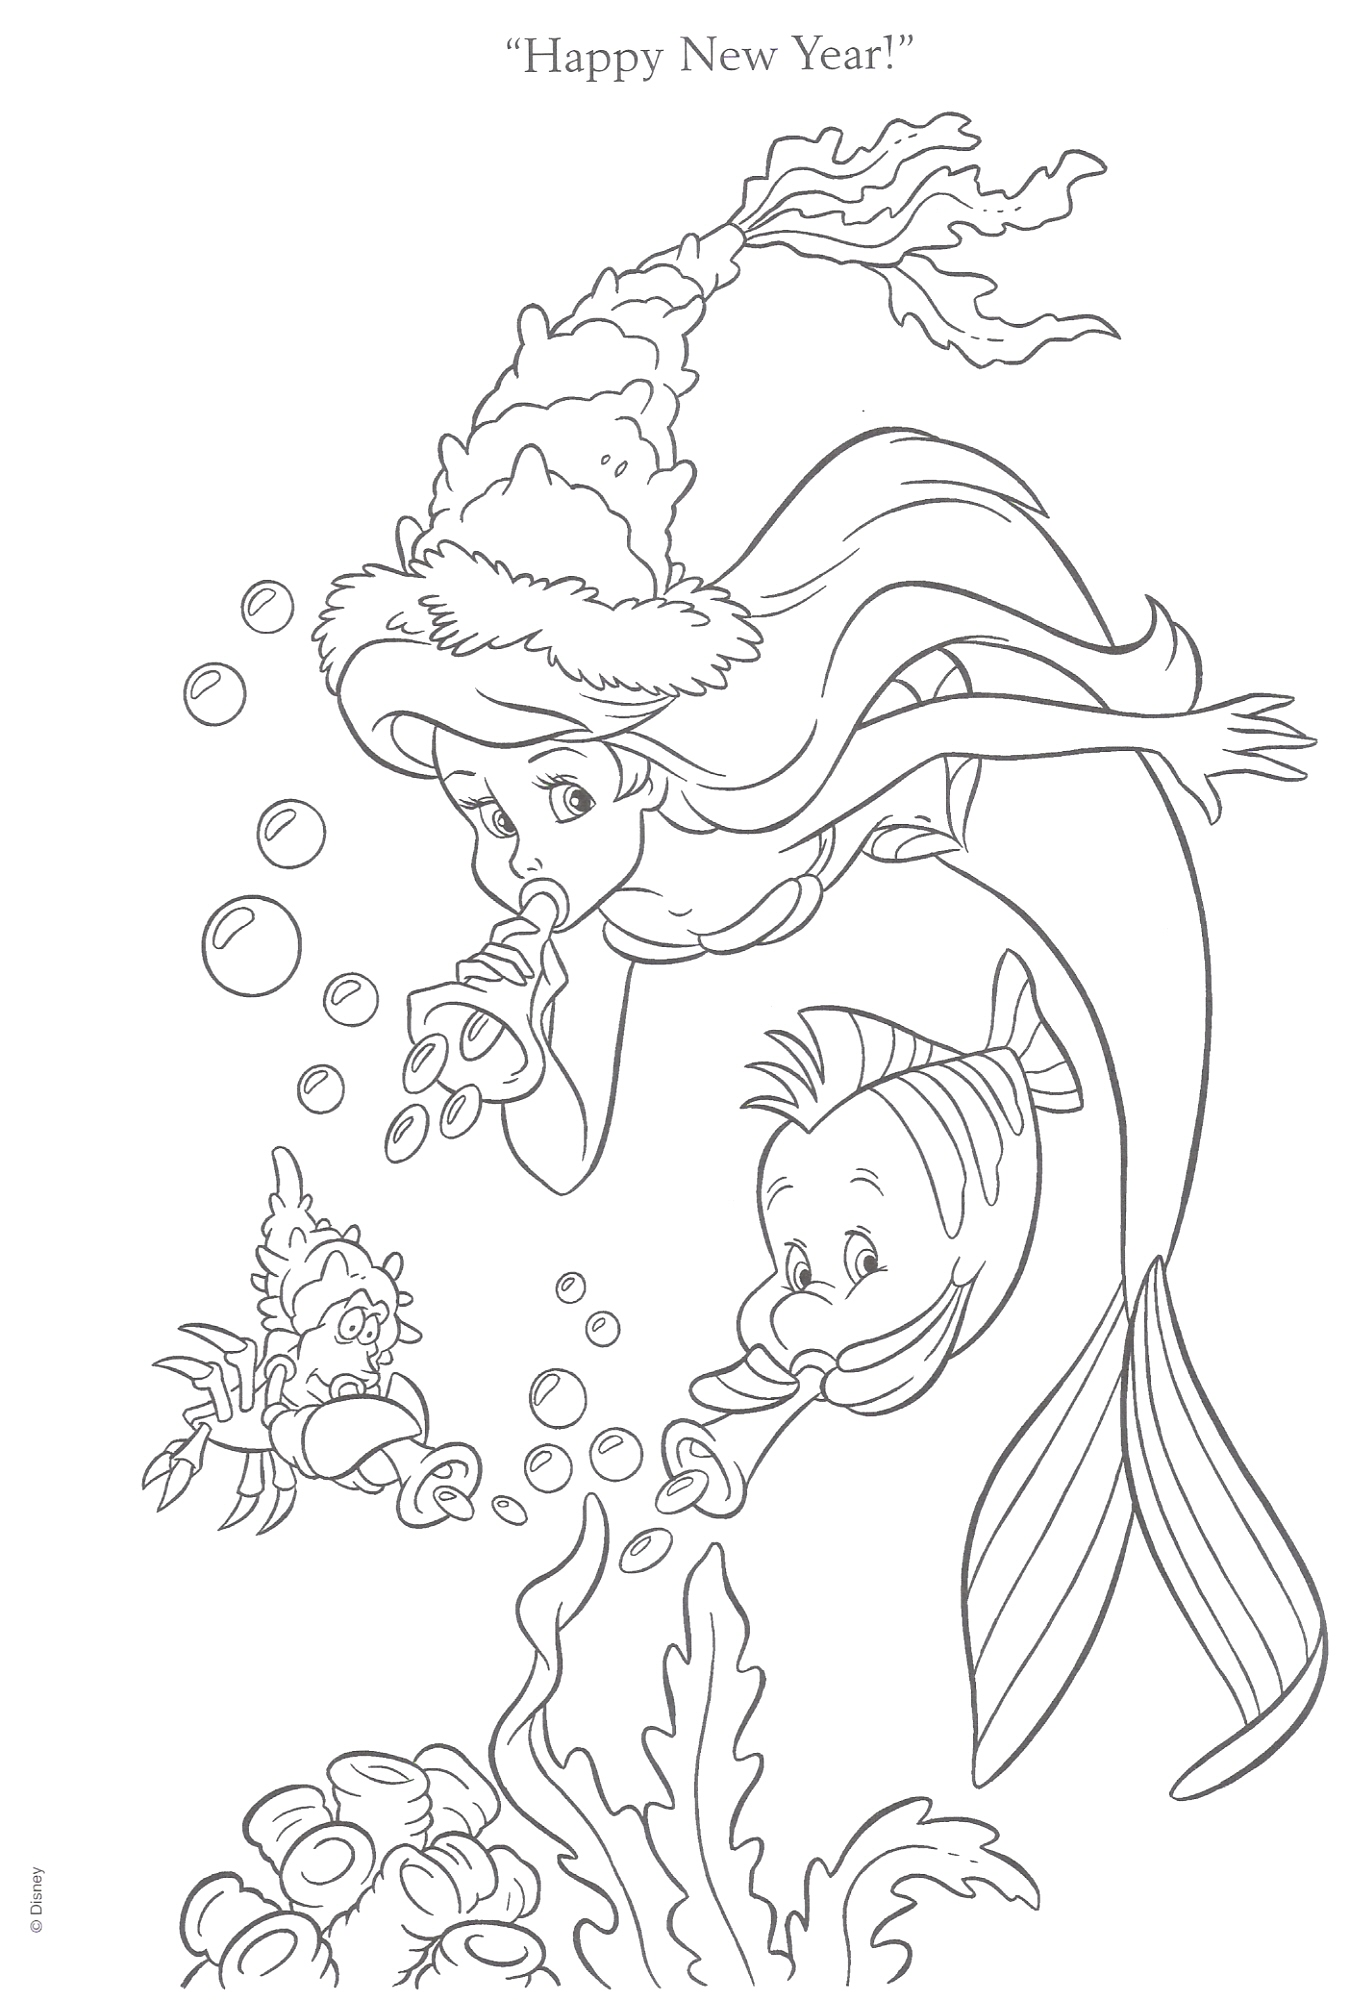 Download The Little Mermaid Coloring Pages7